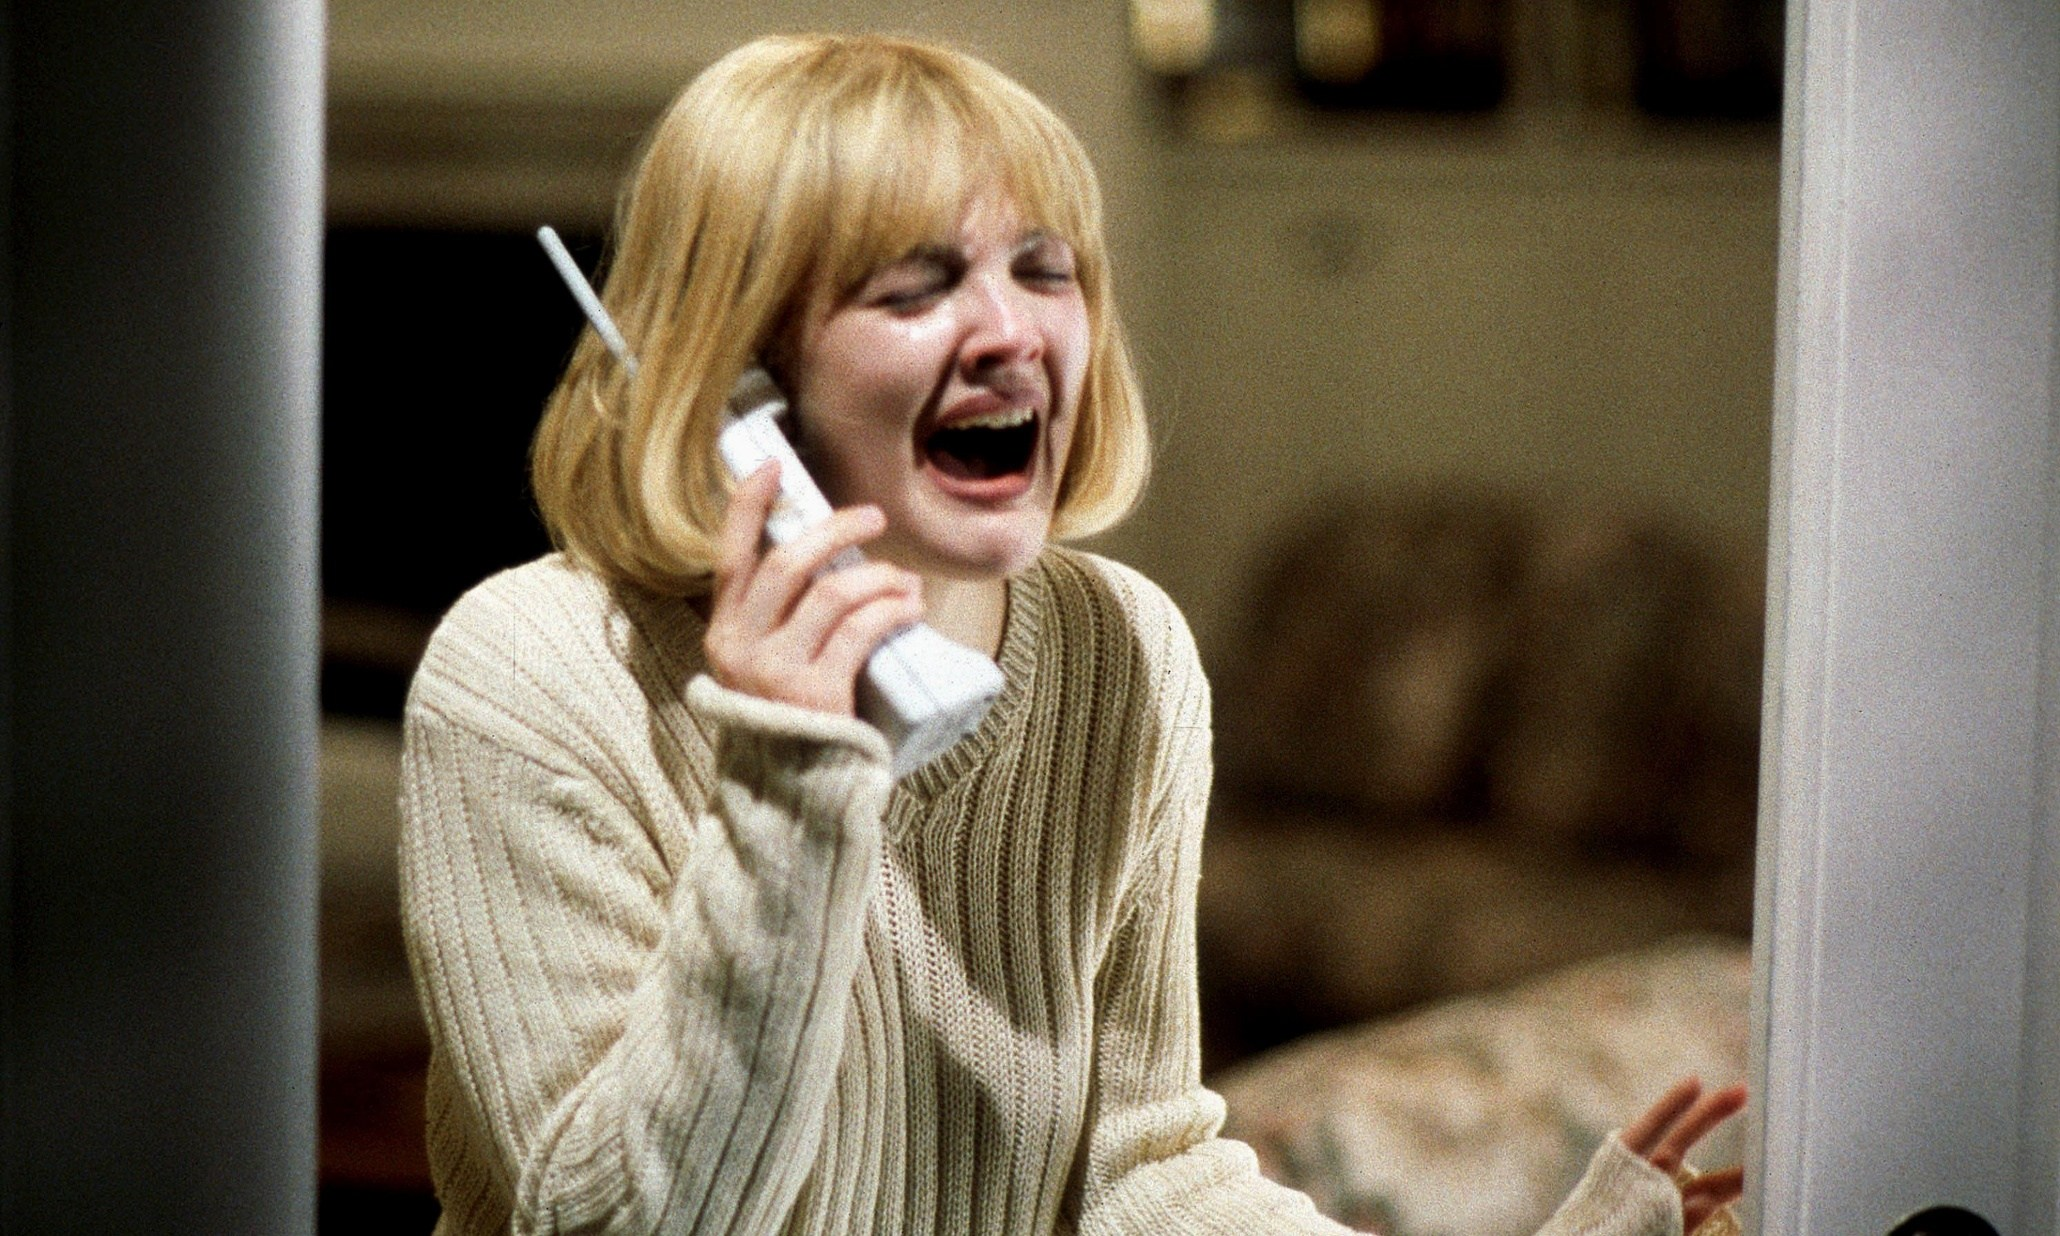 Drew Barrymore answers the phone in the classic opening scene in Scream (1996)